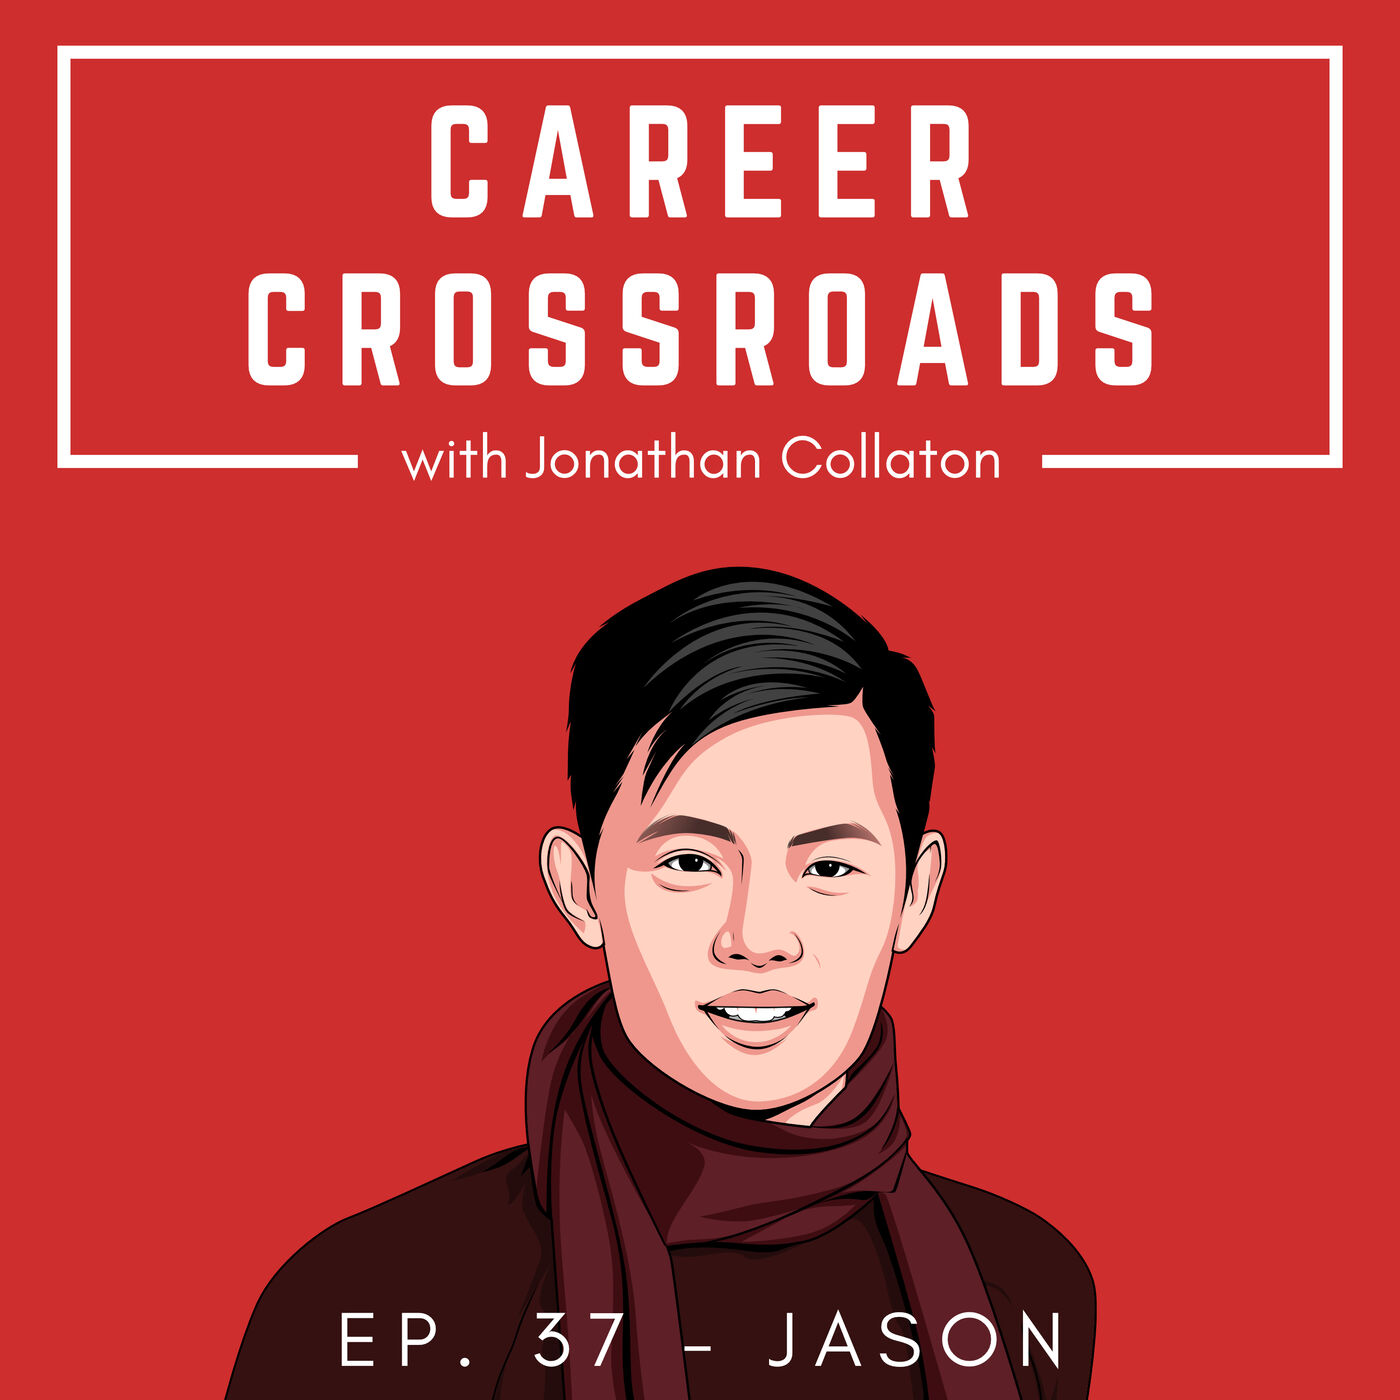 Jason - From Psychology to Professional Dancer